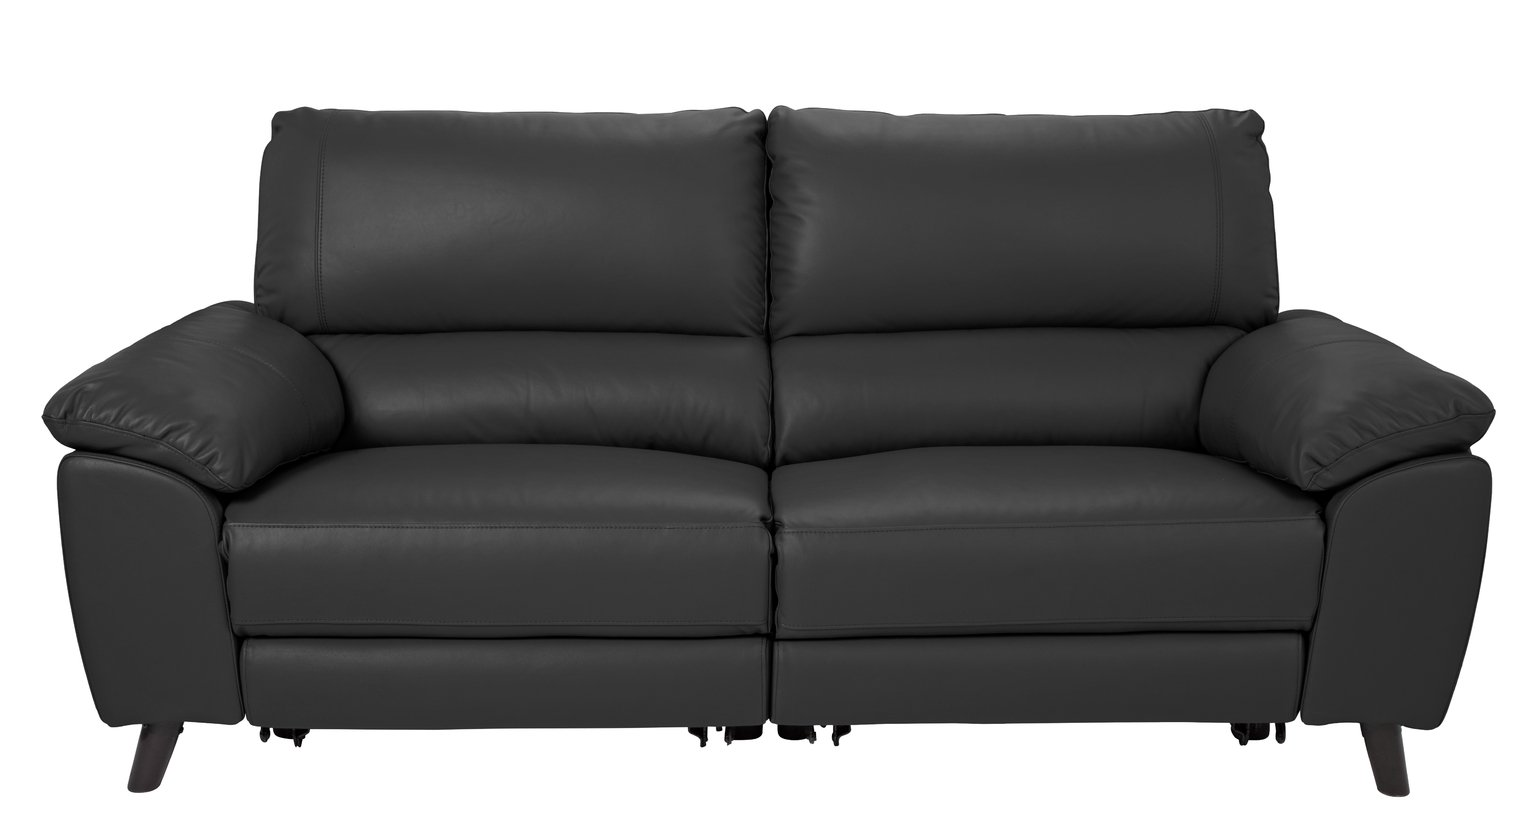 Hygena Hygena Elliot 3 Seater Power Recliner Sofa - Black